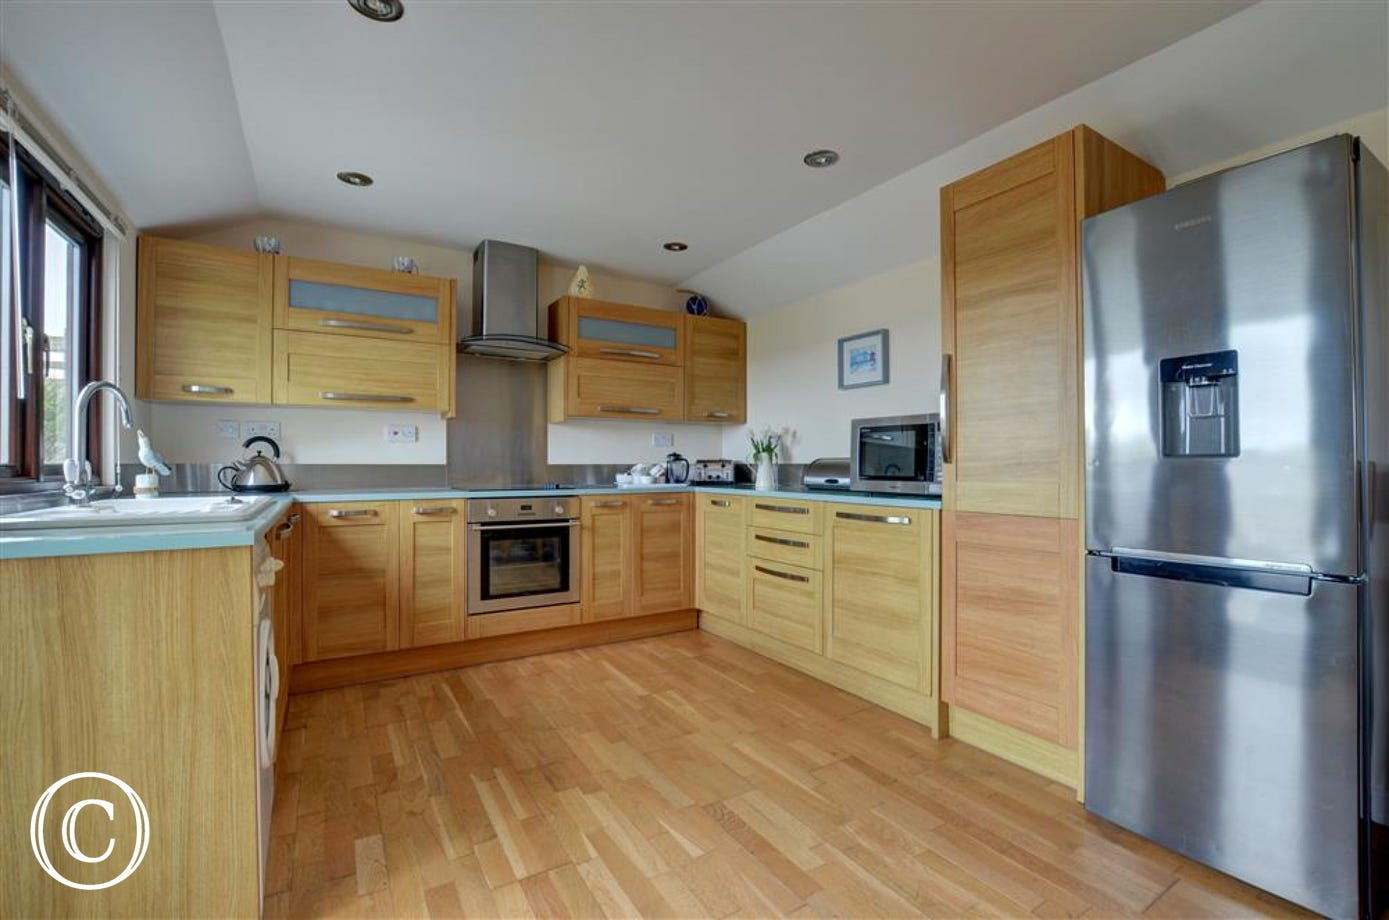 Good sized kitchen with everything you need for your holiday